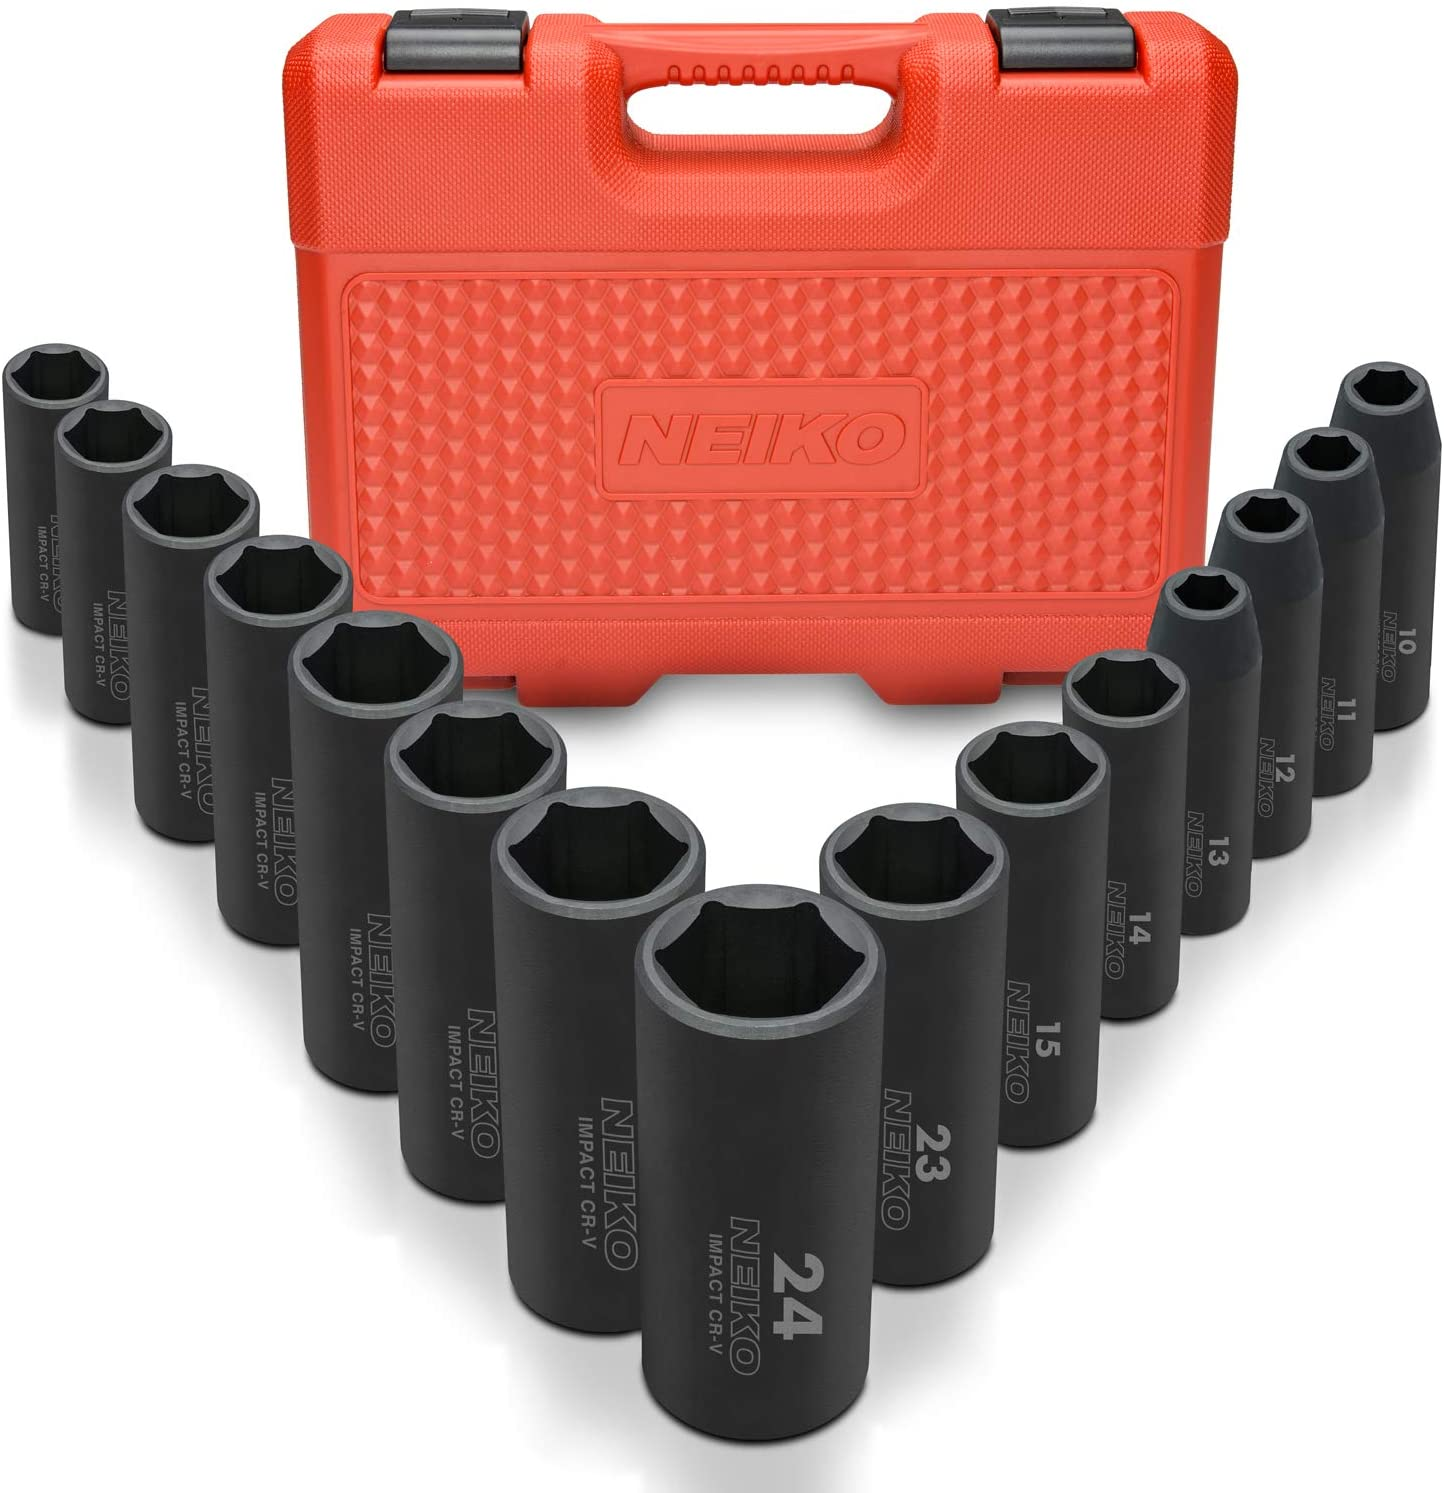 6 Point, TACKLIFE Complete 1//2-Inch Drive Deep Impact Socket Set Metric CR-V